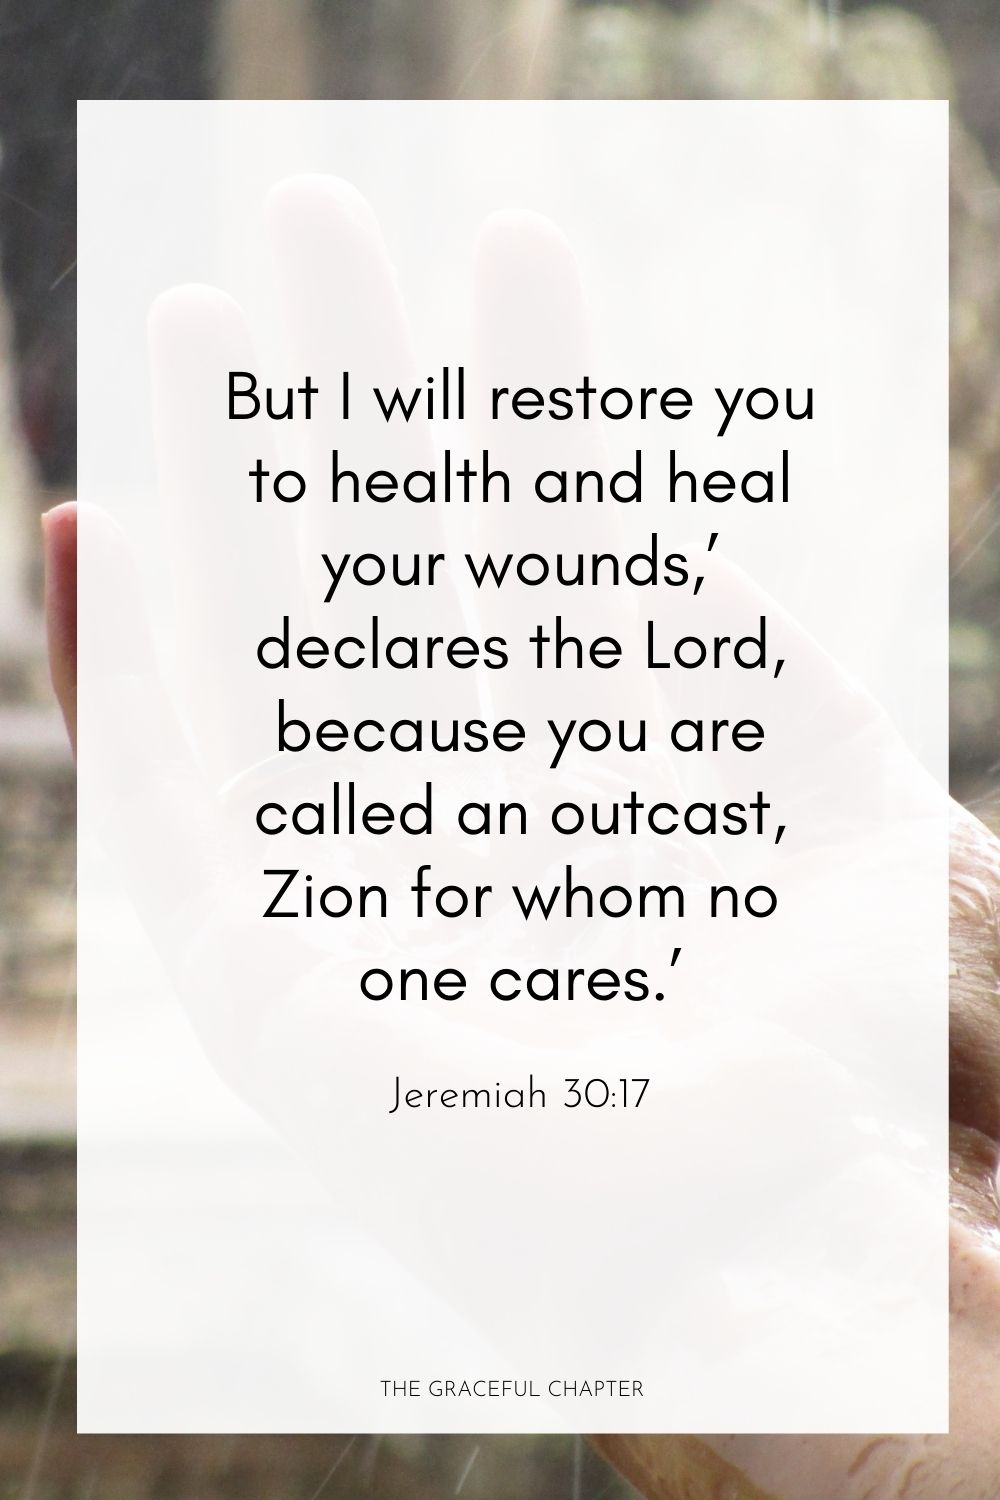 But I will restore you to health and heal your wounds,' declares the Lord, because you are called an outcast, Zion for whom no one cares.' Jeremiah 30:17